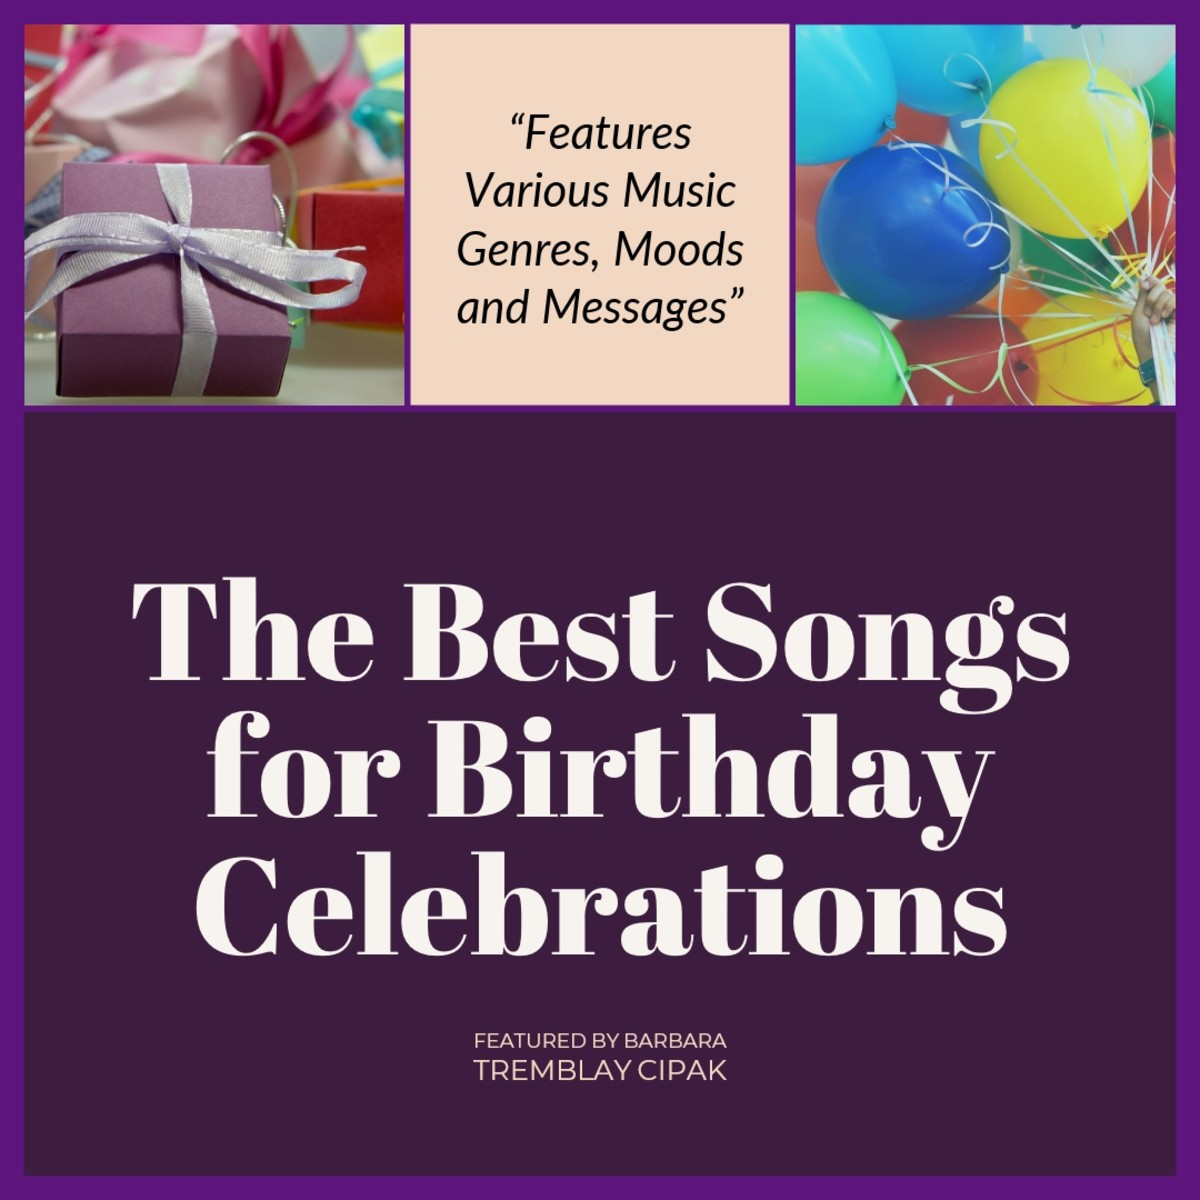 The Best Songs for Birthday Celebrations ranging in message, mood and genre